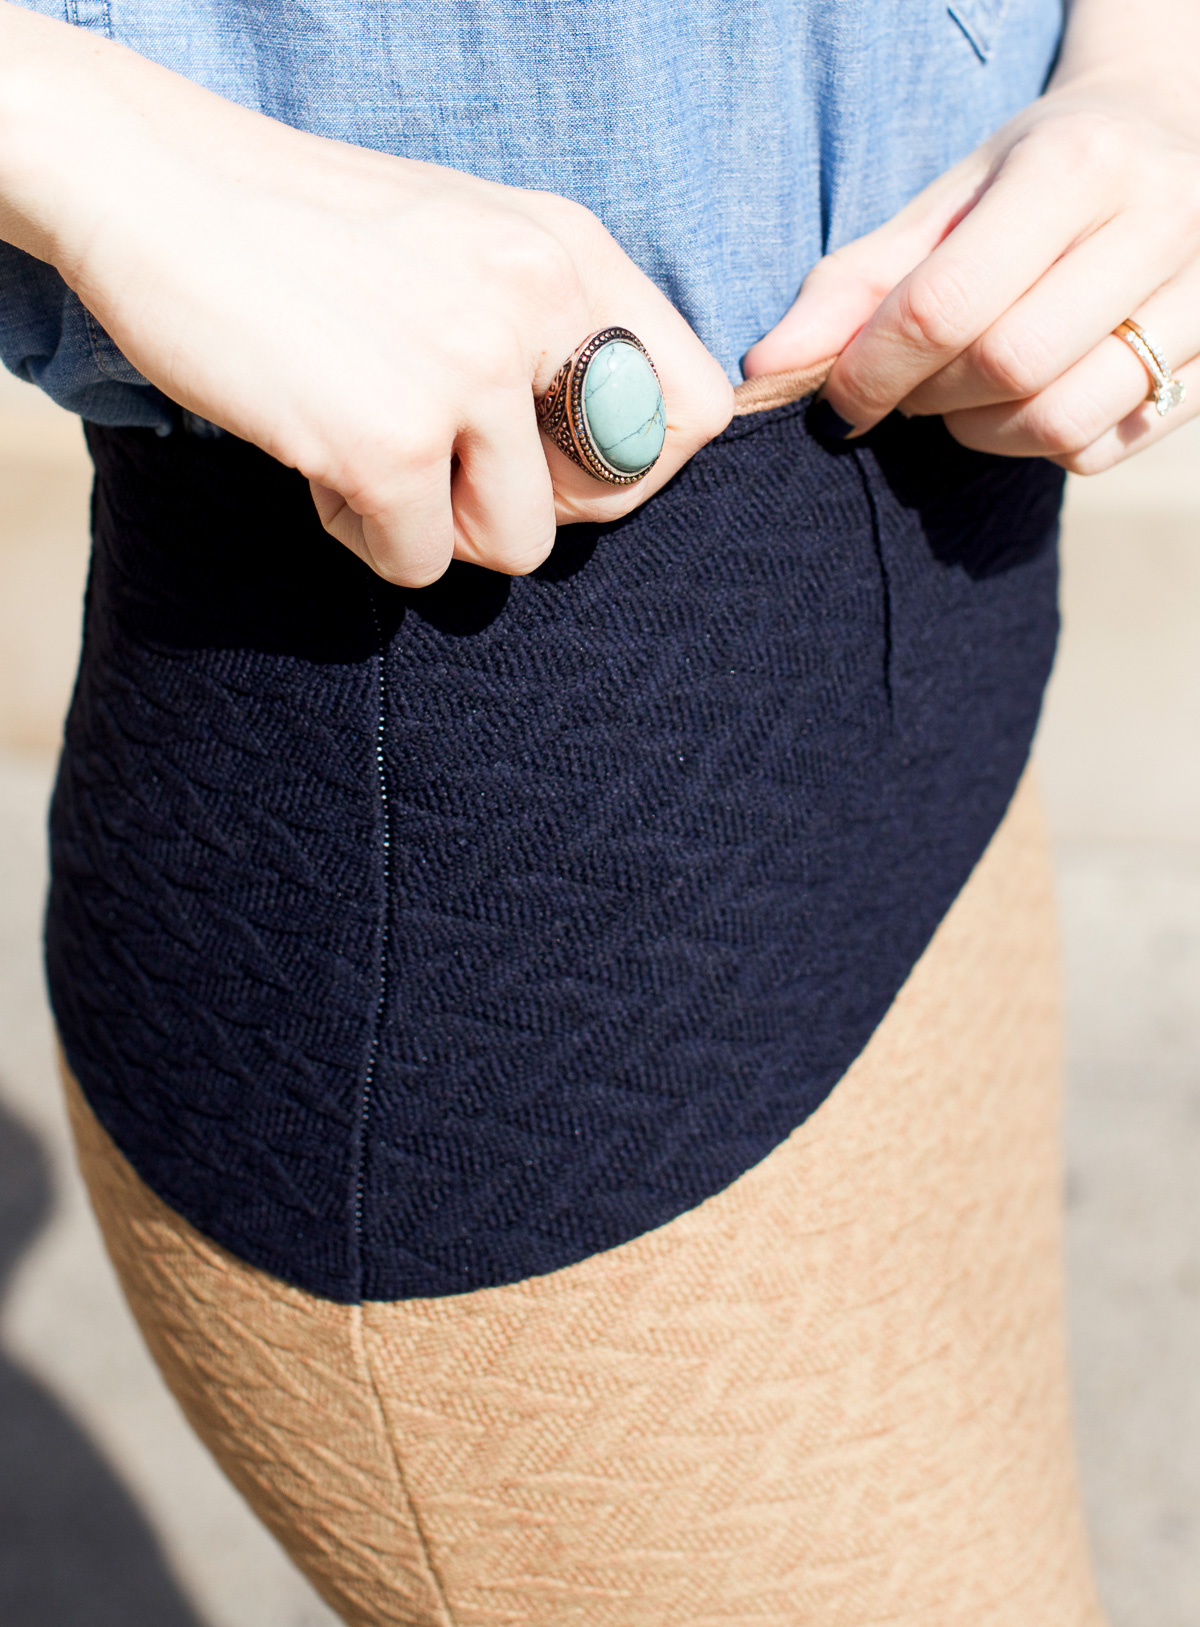 Anthropologie skirt_Top US Fashion Bloggers_Chicago Fashion Bloggers_How to style chambray-7